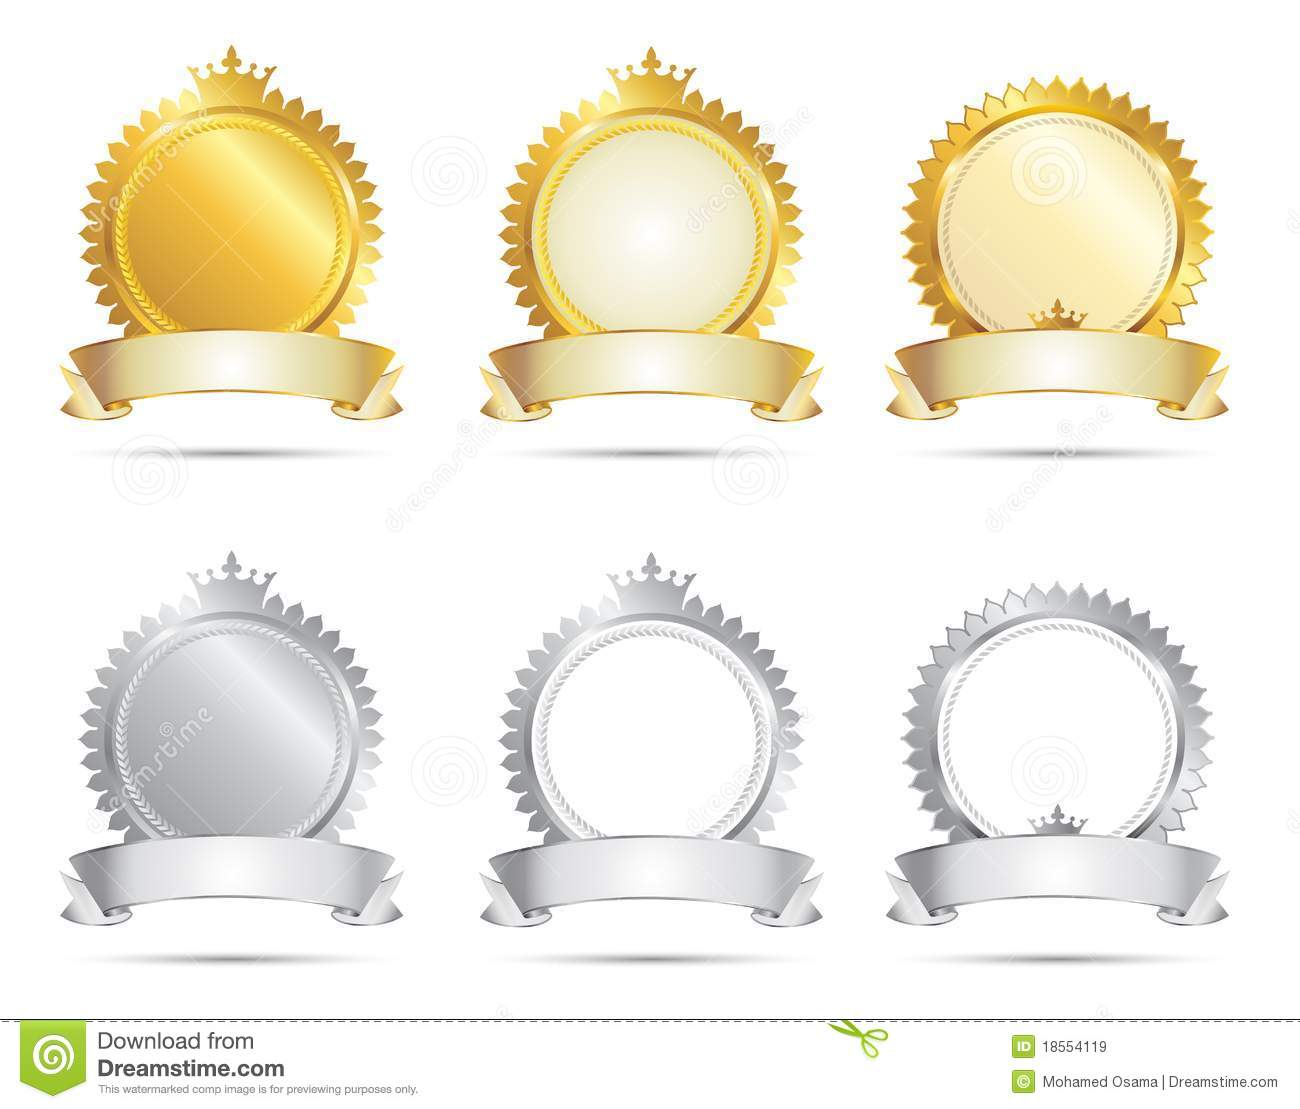 Approval Seal Gold Amp Silver Set Royalty Free Stock Images